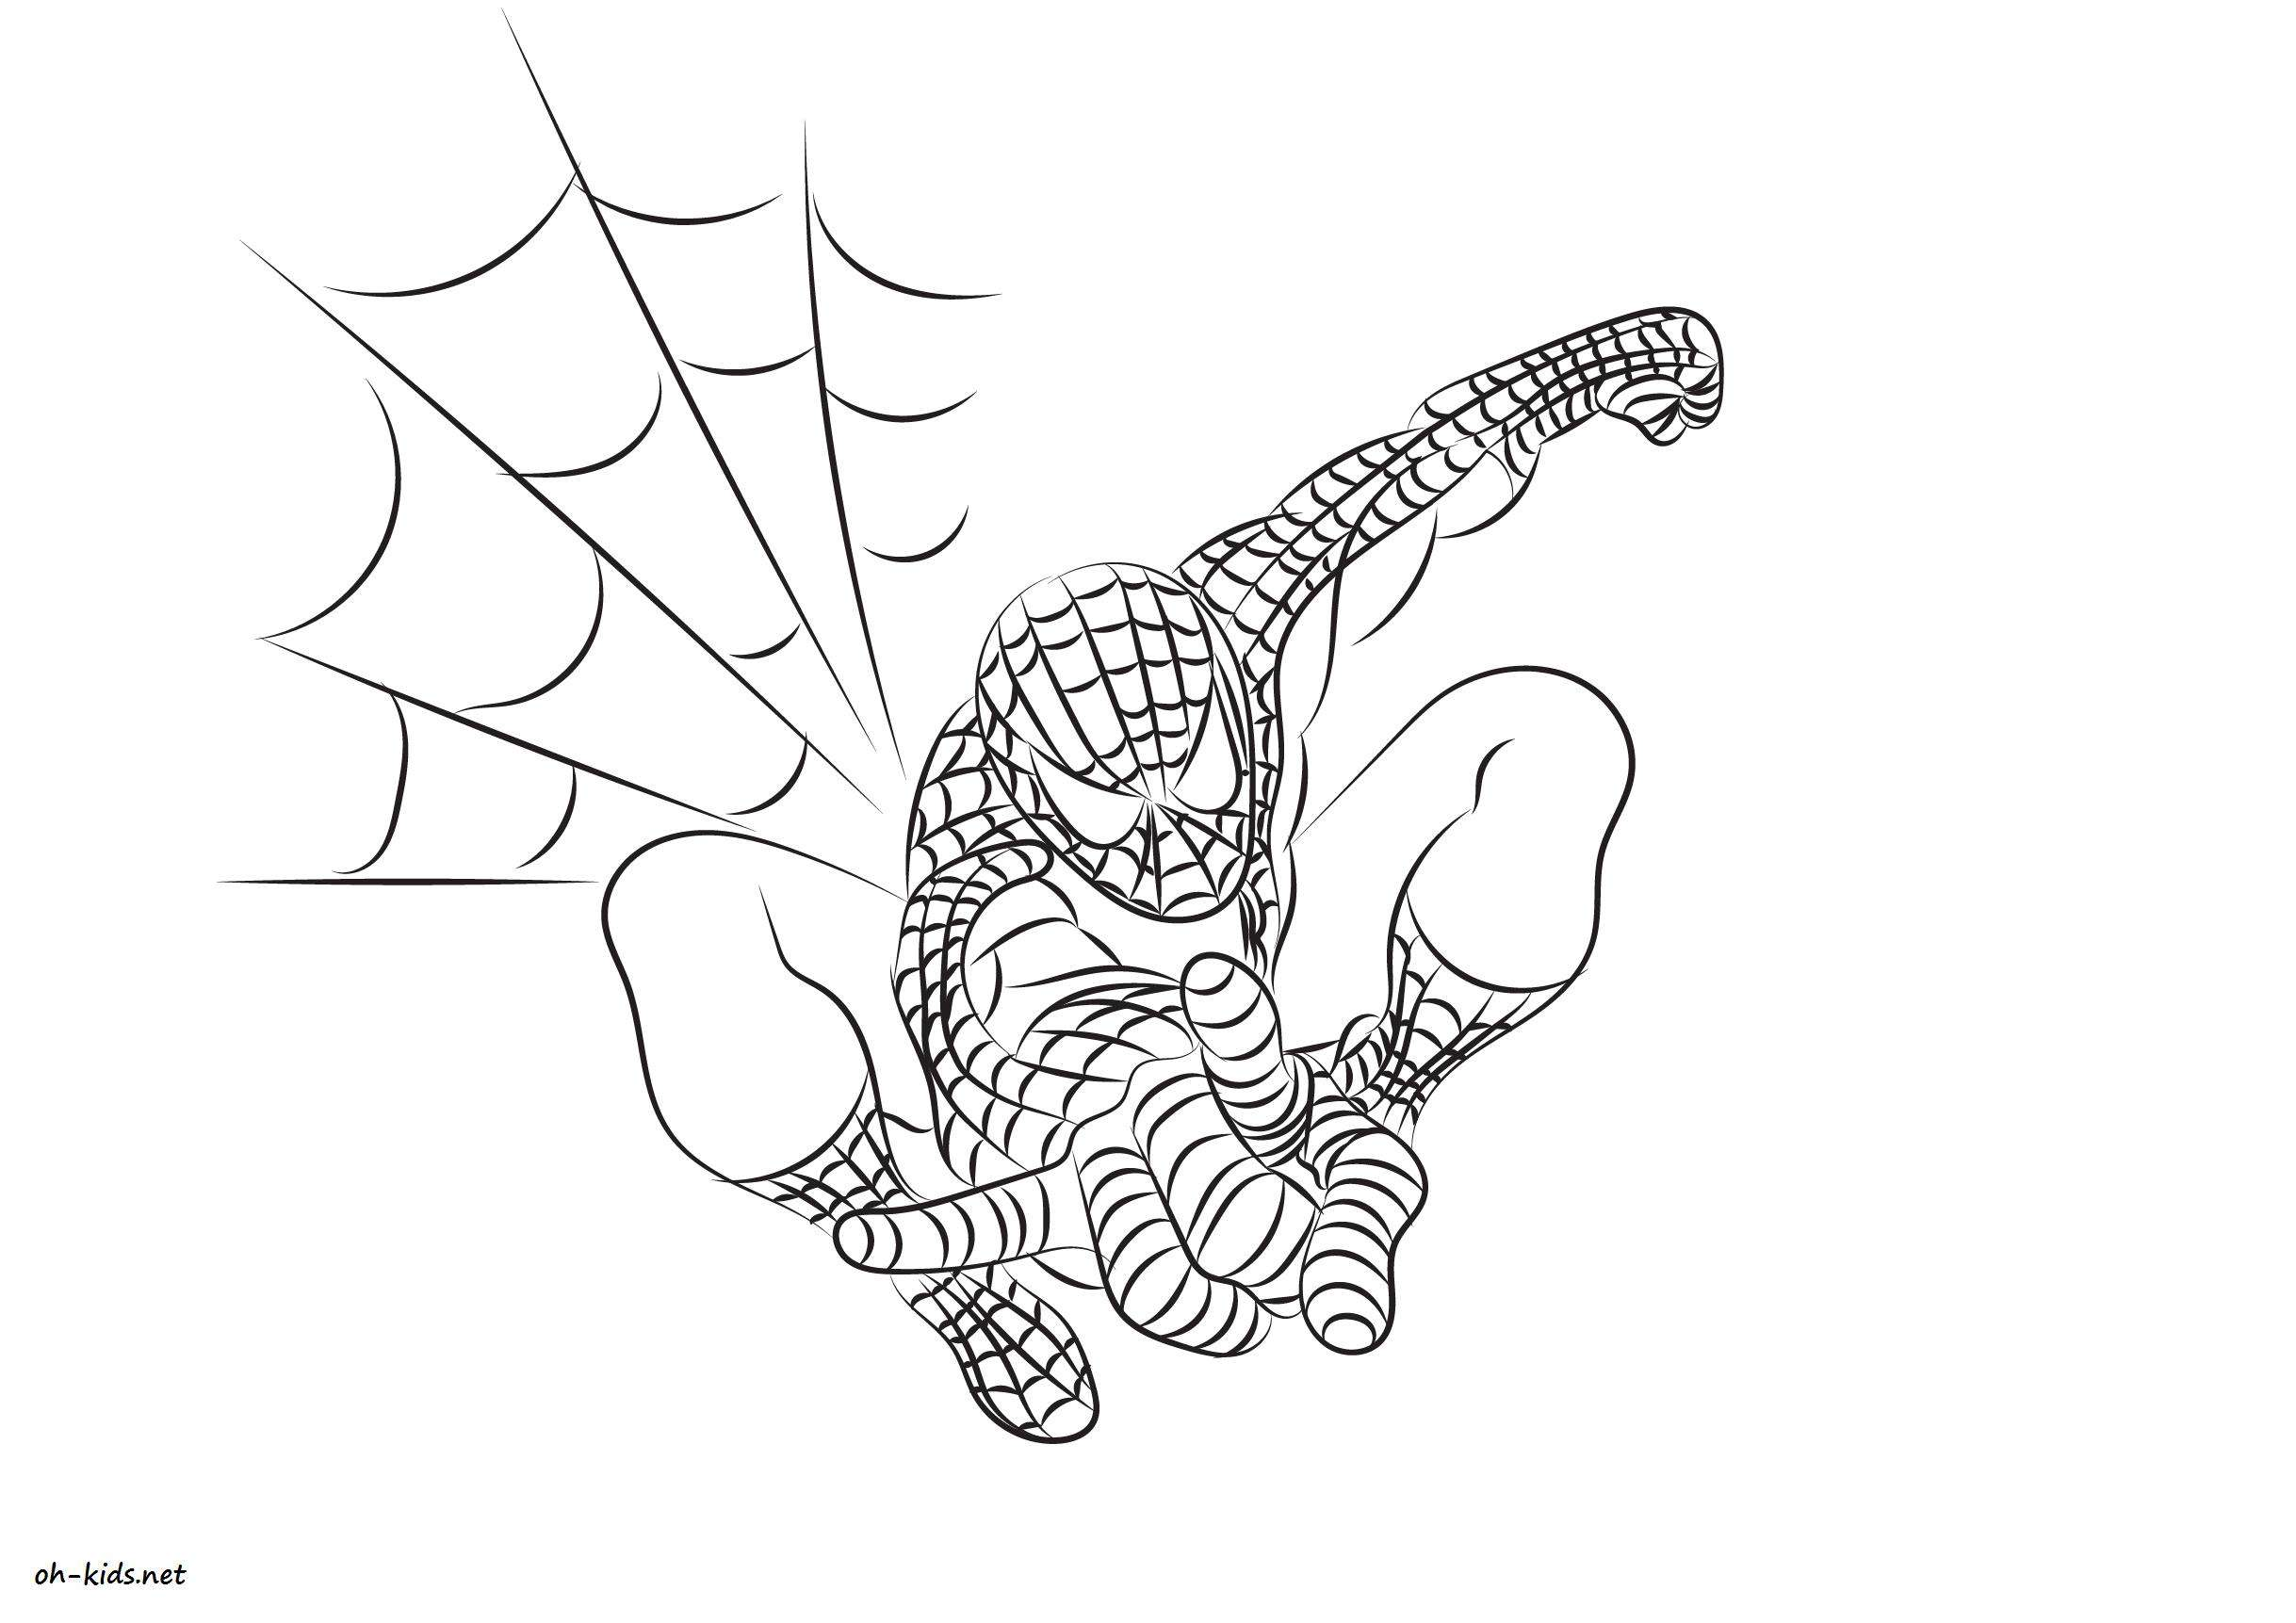 Dessin 829 coloriage spiderman imprimer oh - Photo de spiderman a imprimer gratuit ...